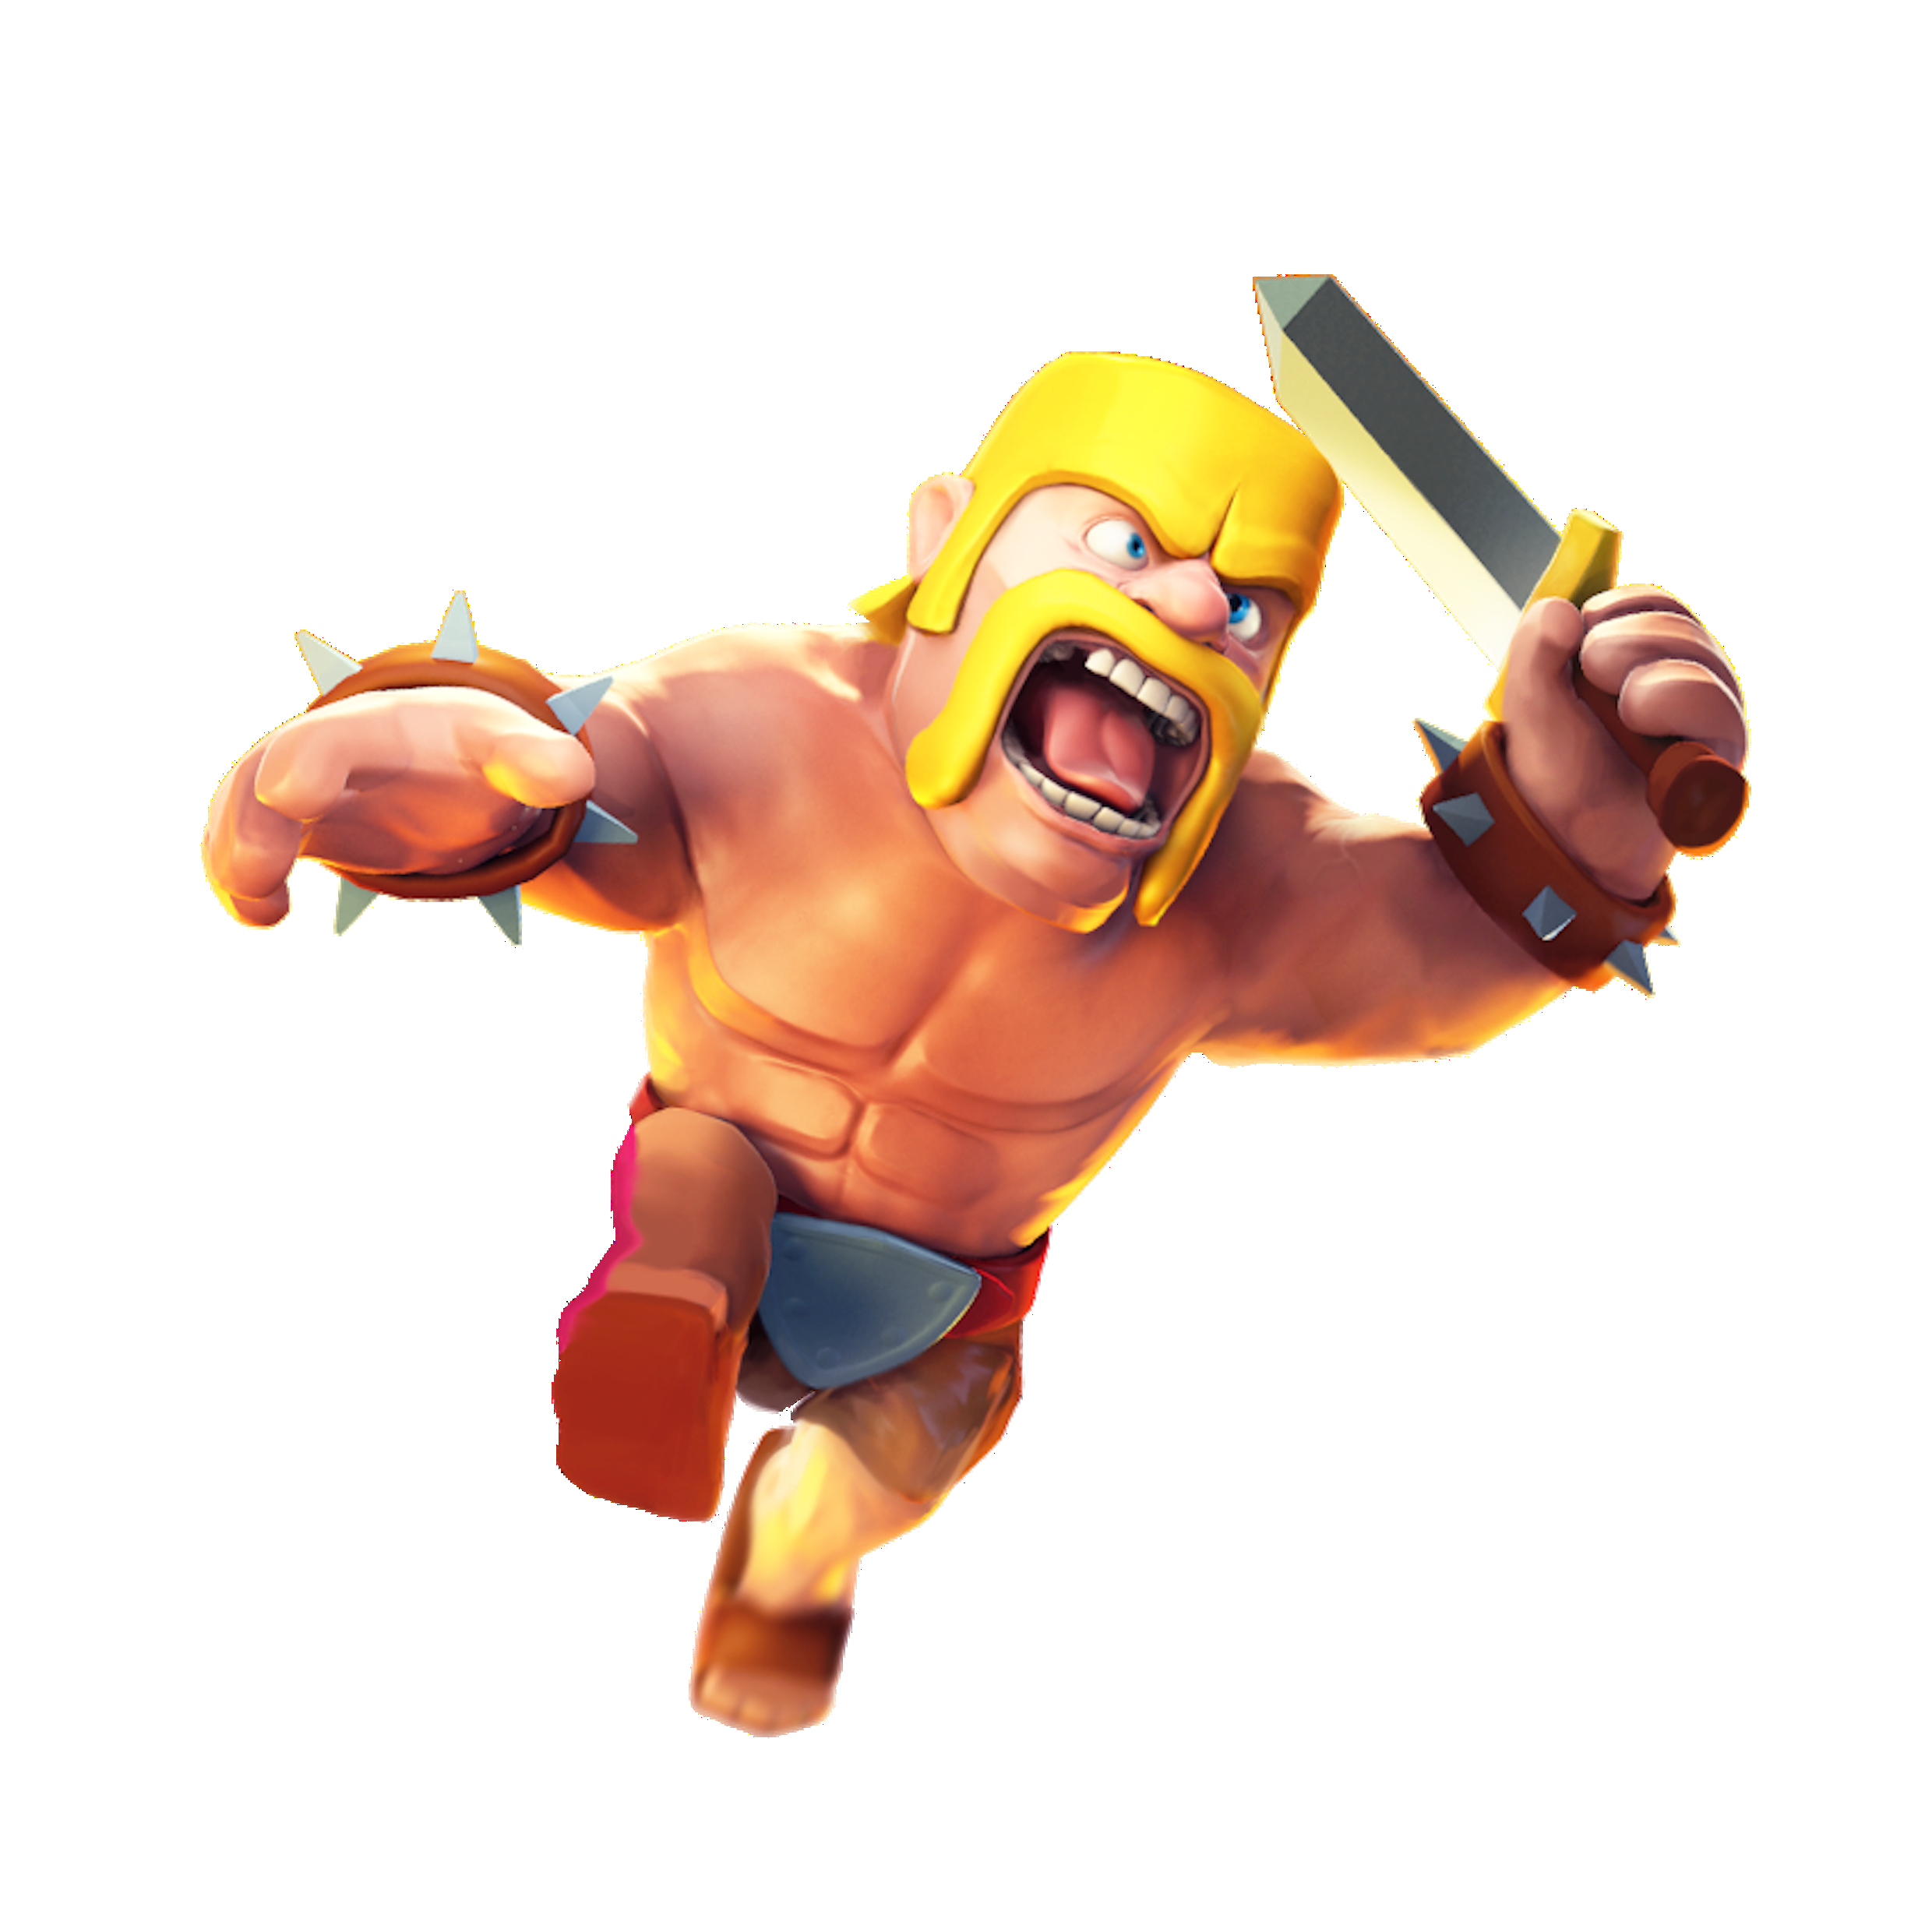 Clash Of Clan Iphone Wallpaper Hd For Clans Png Transparent Smartphone  Pictures Images - Clash Of Clans PNG